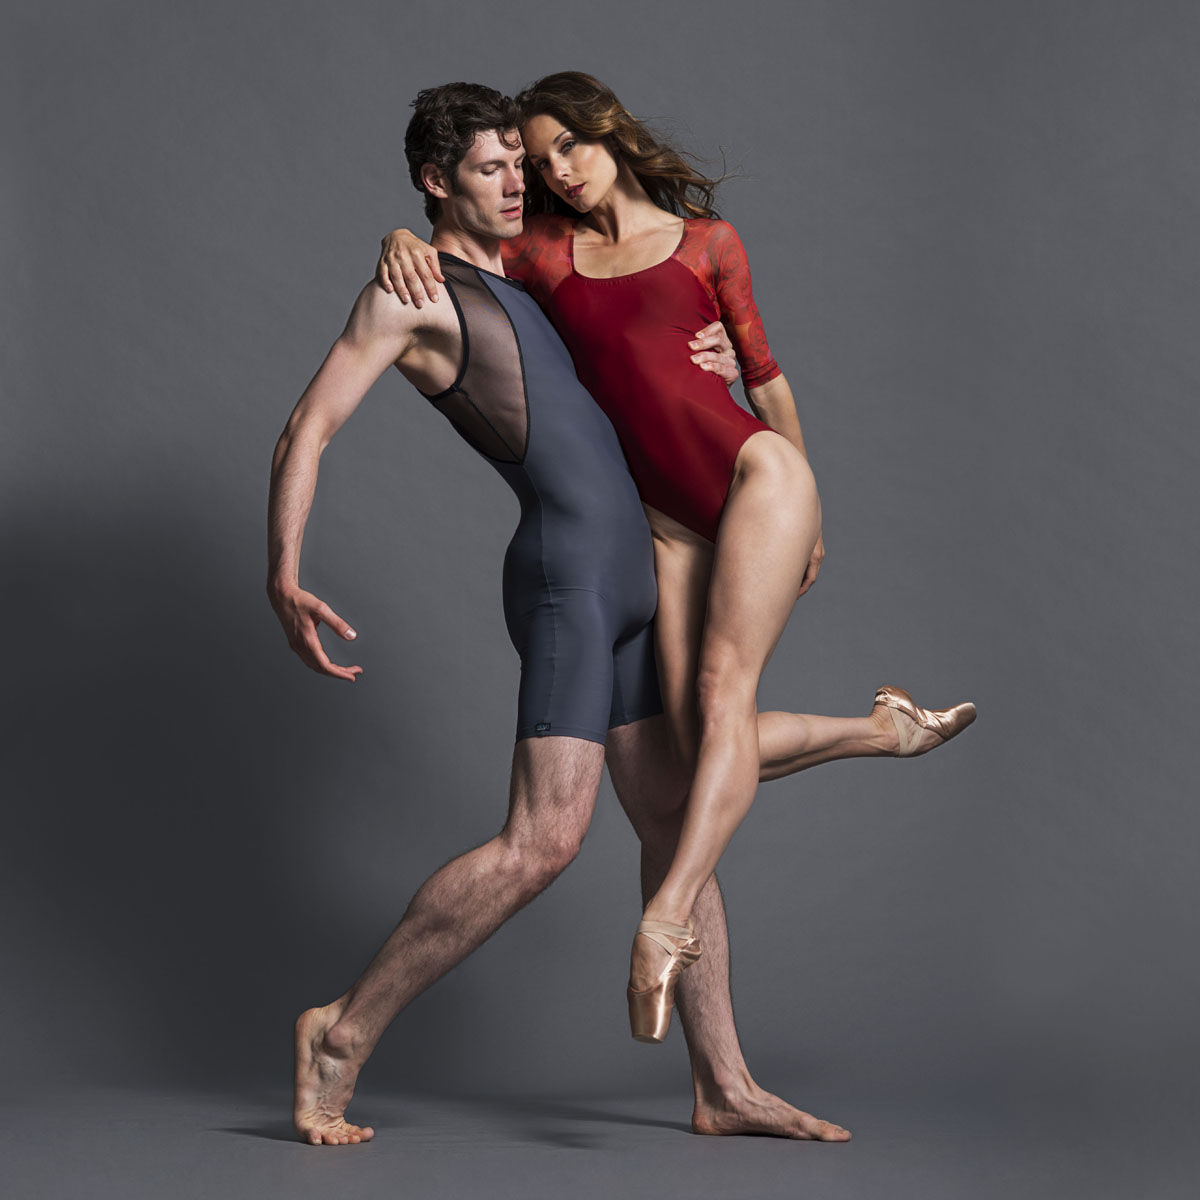 Biketard - Nathan; Leotard - Sally